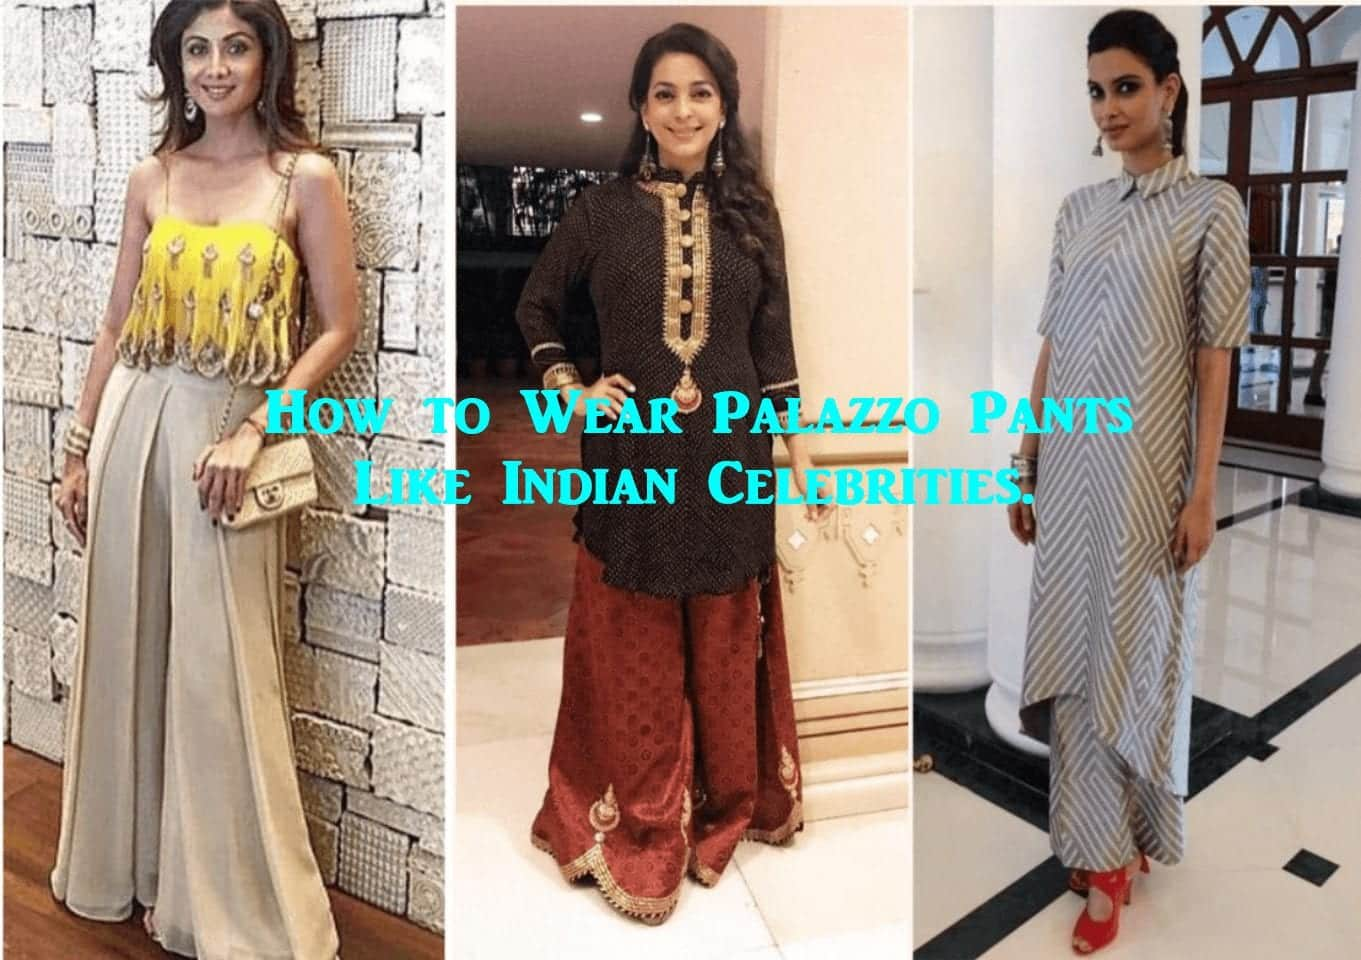 74d51109cd Indian Celebrities in Palazzo Pants-19 Ways to Wear Palazzo Like Them